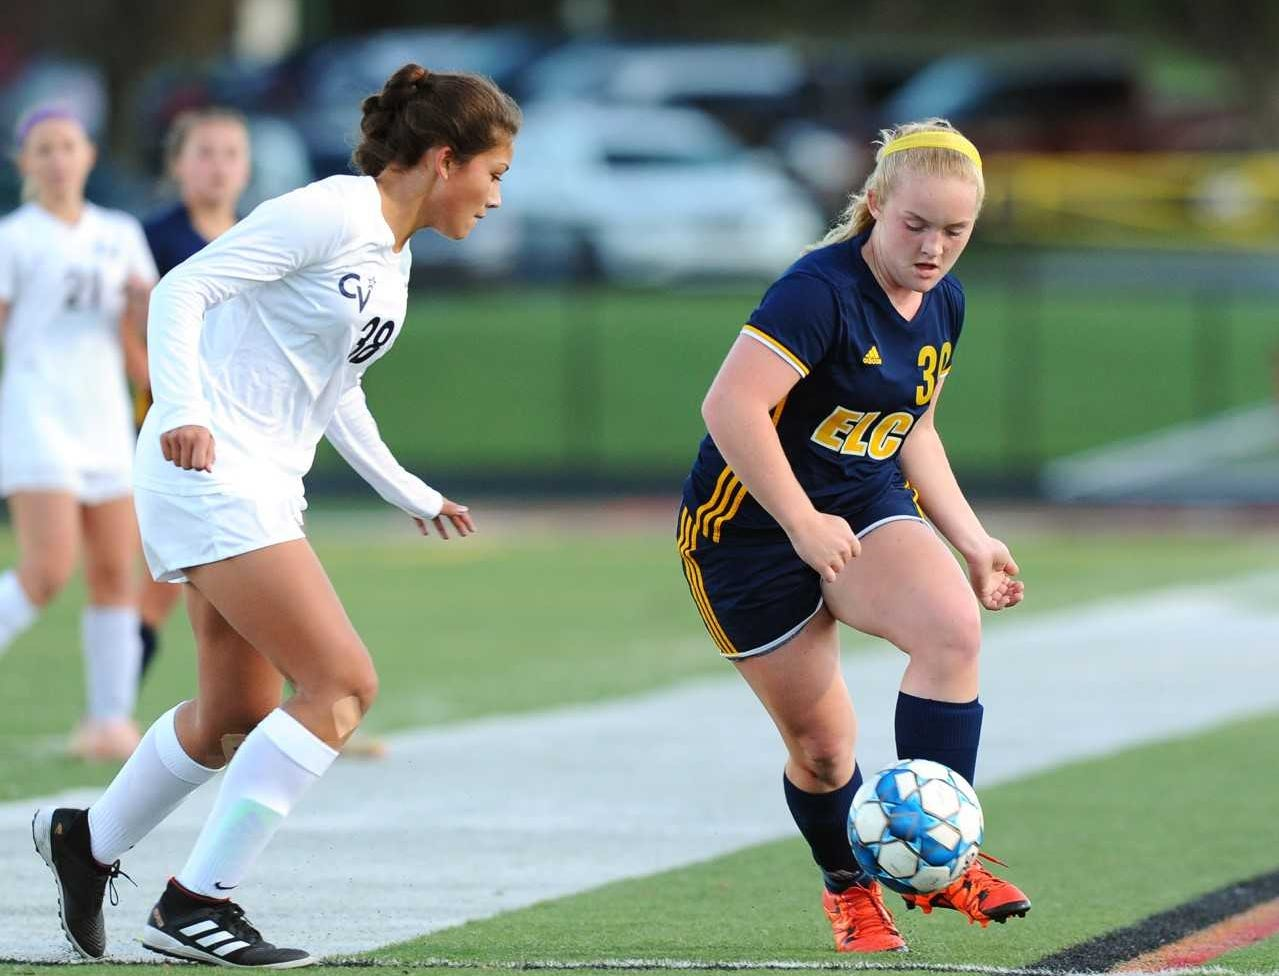 Emma Fox (39) of Elco moves the ball past CV's Delainey Varela-Keen (38) during the first half of play.